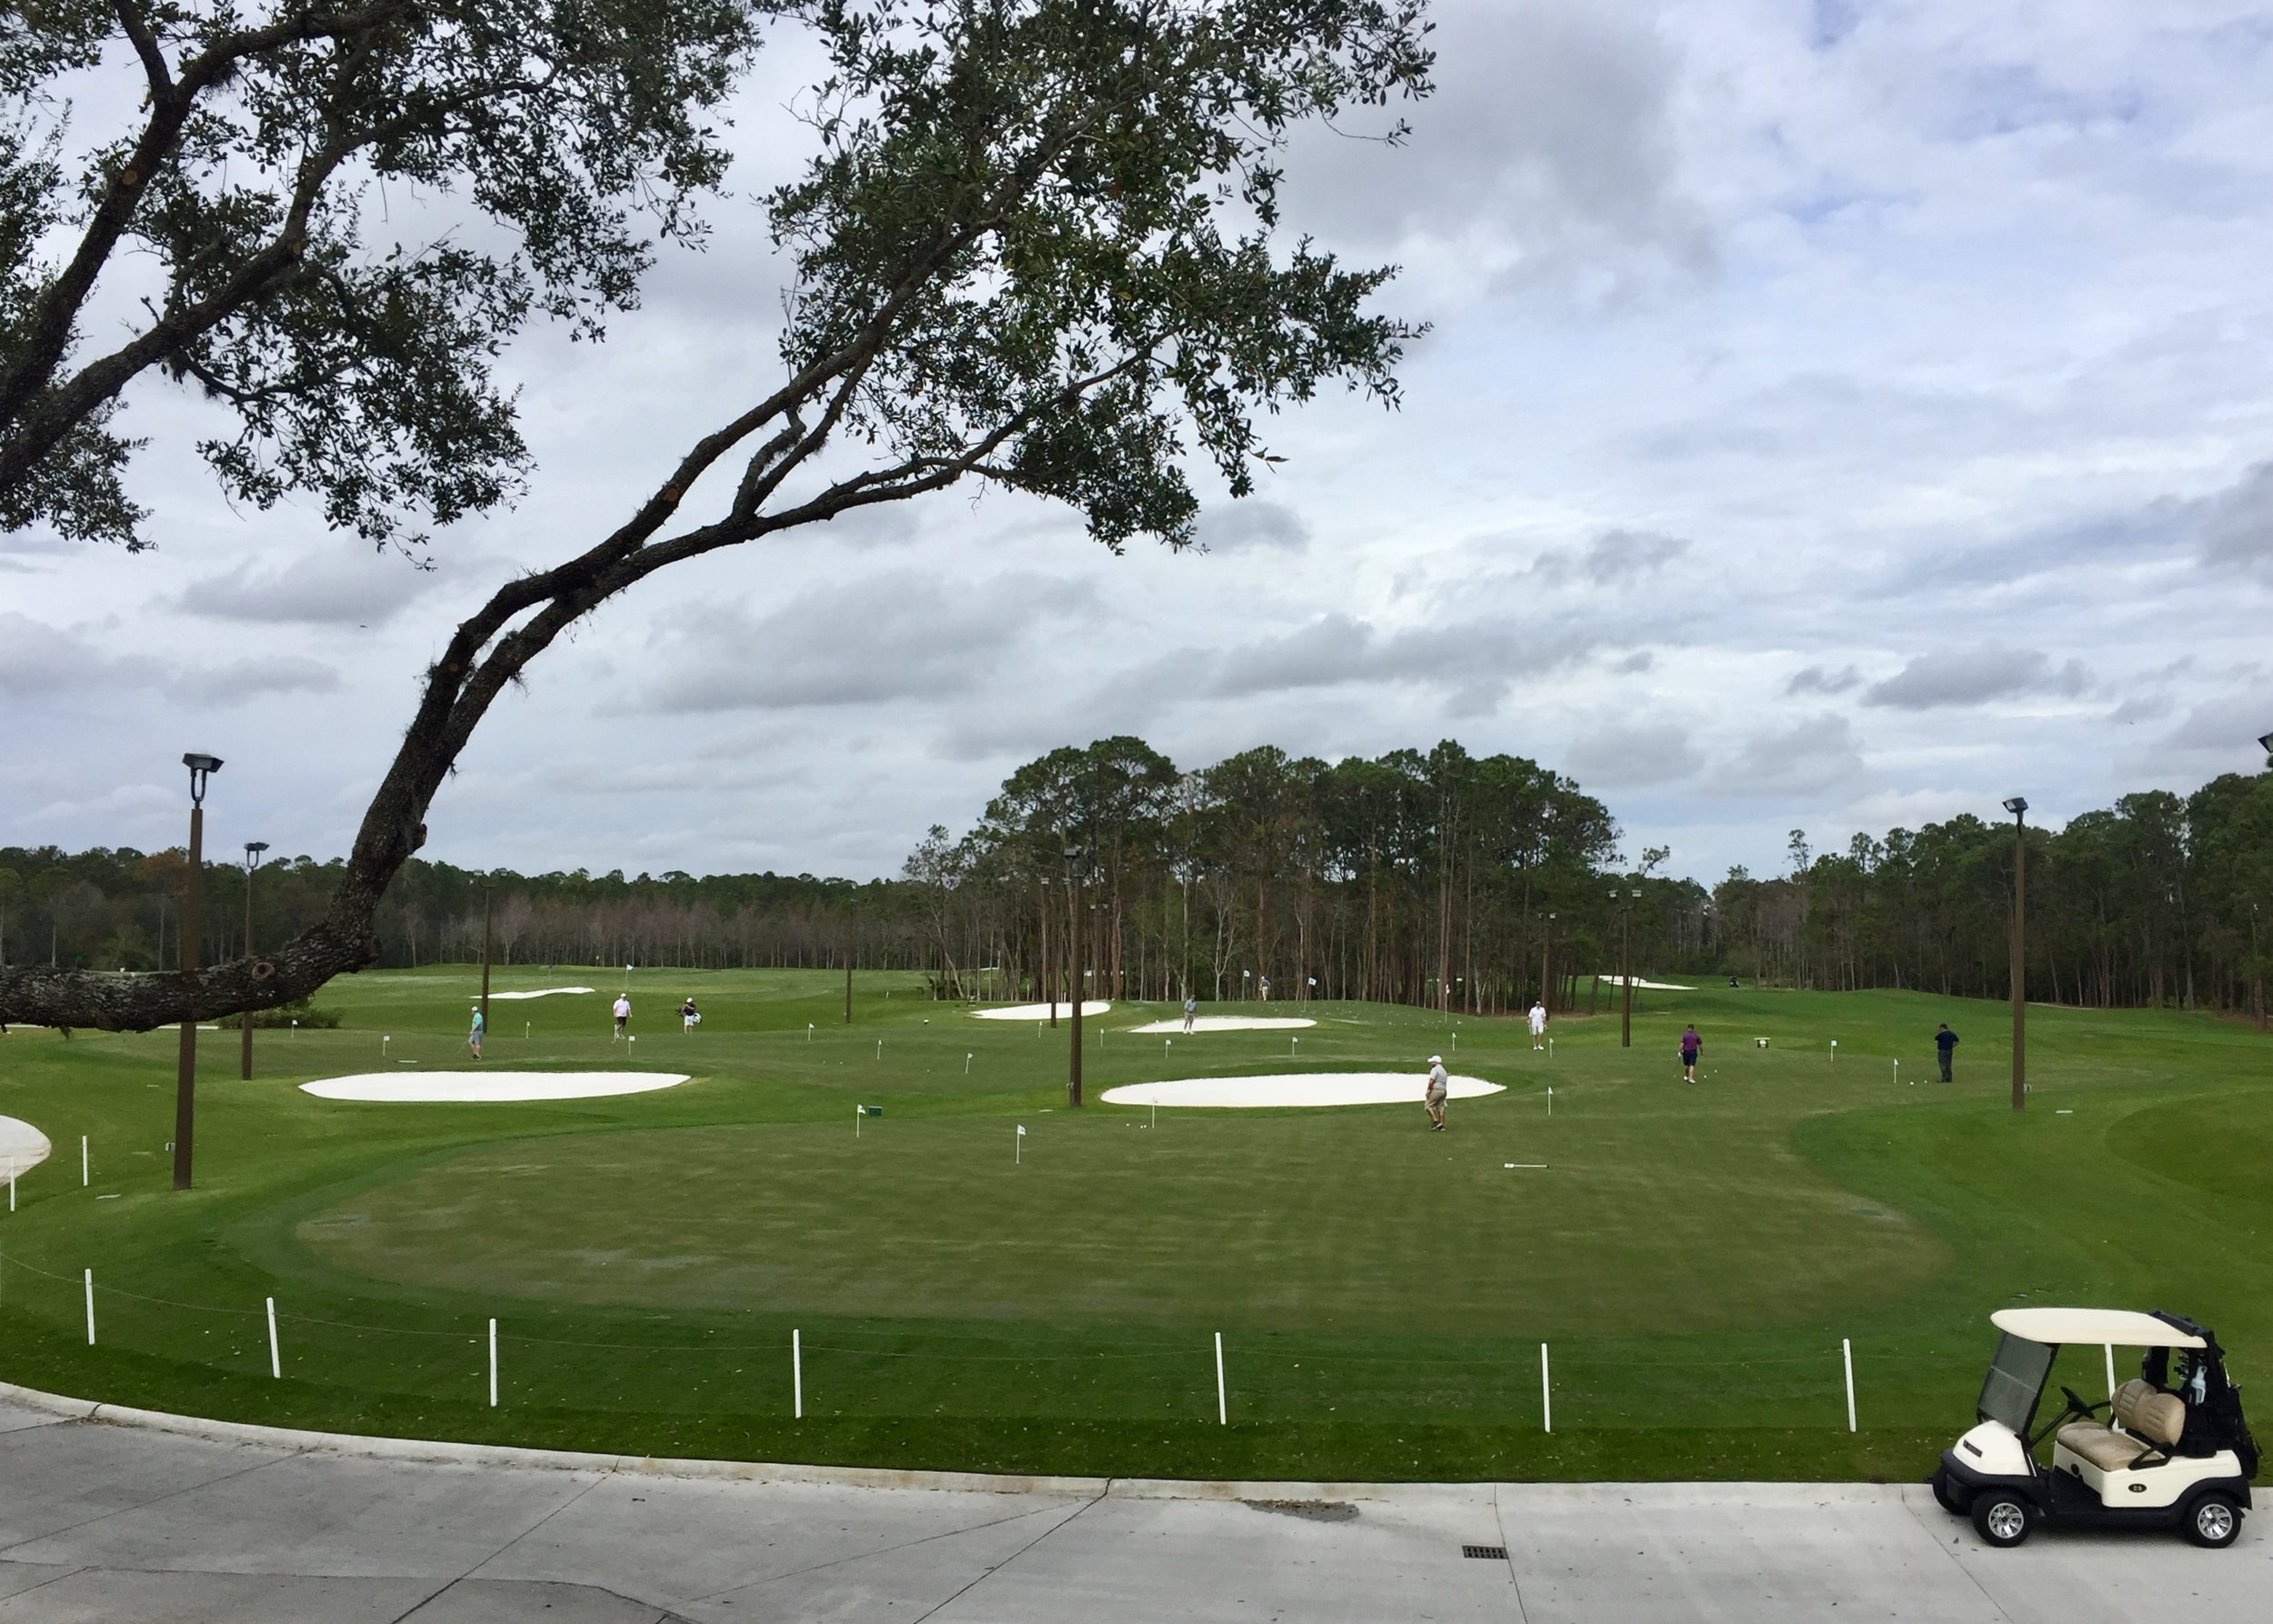 The 18-hole putting course at Tranquilo